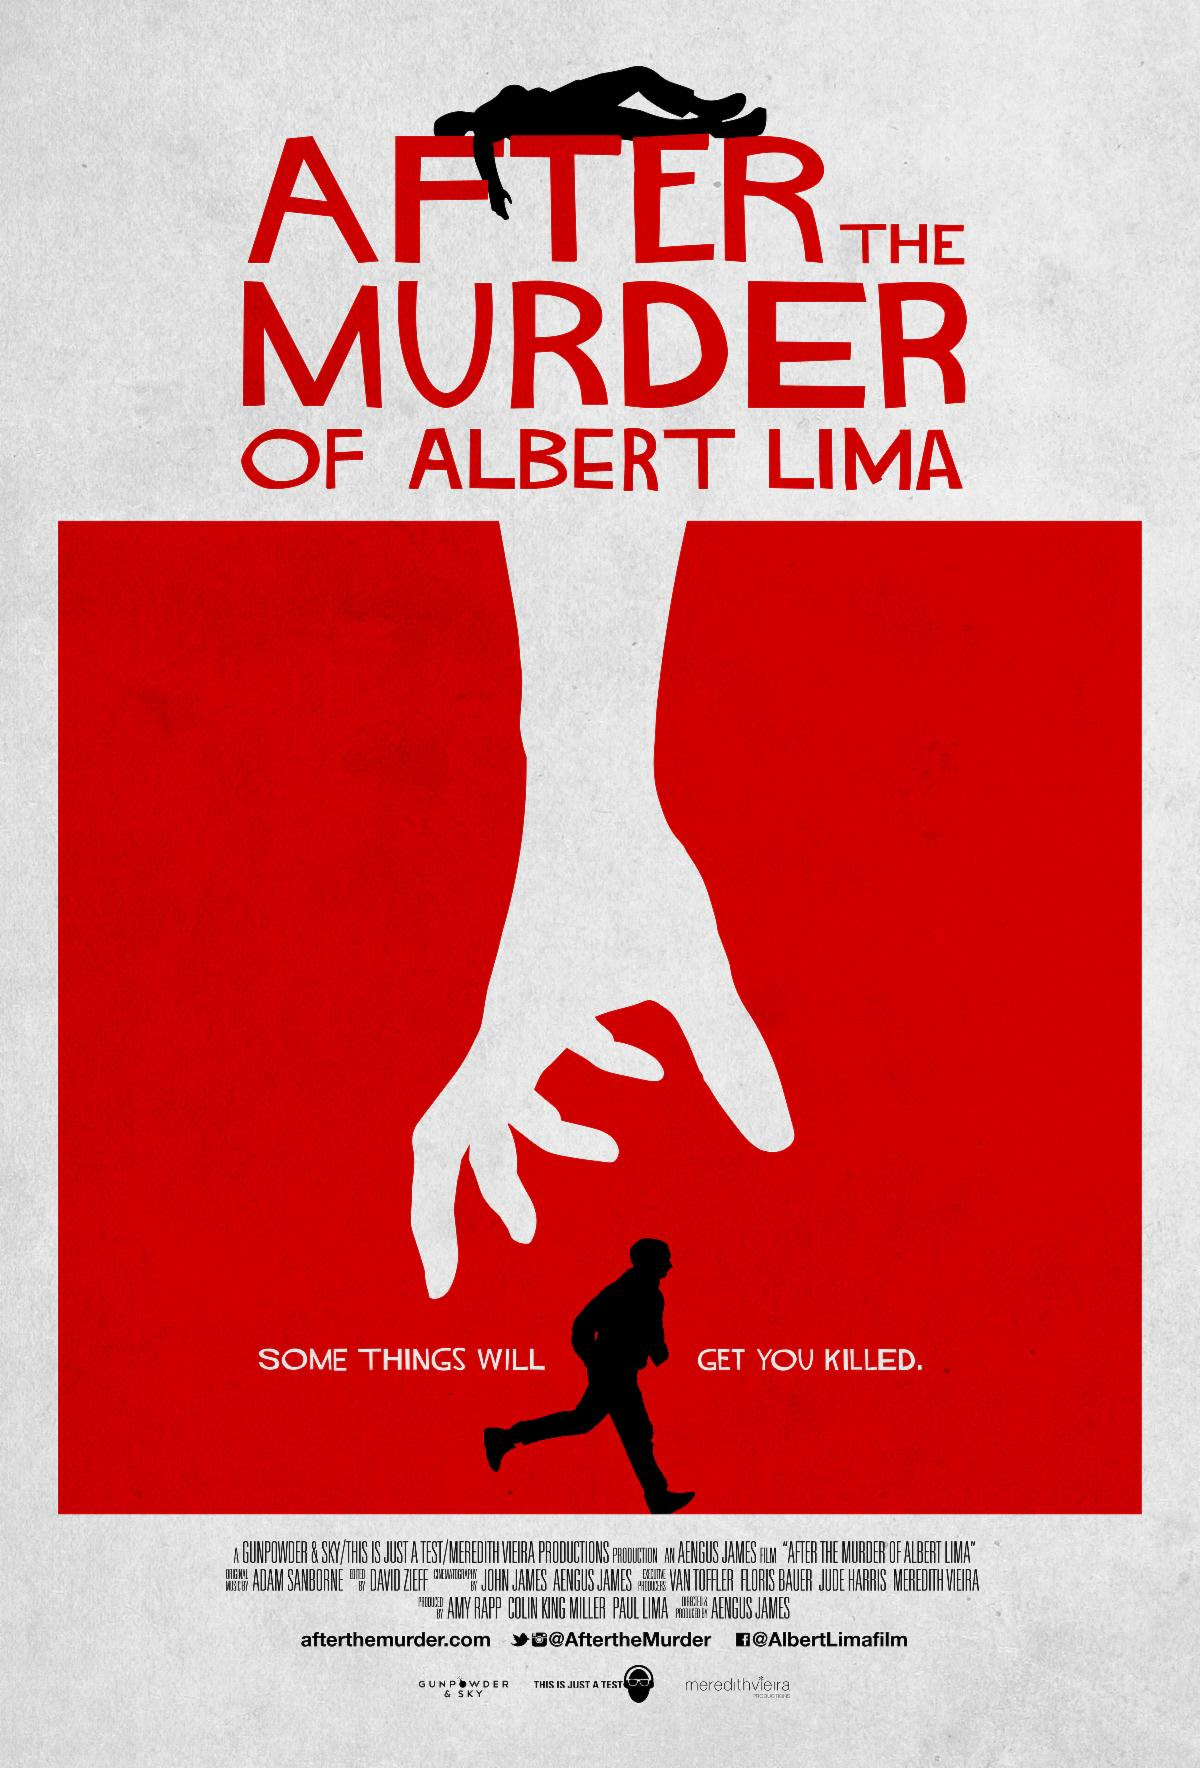 After the Murder of Albert Lima Image